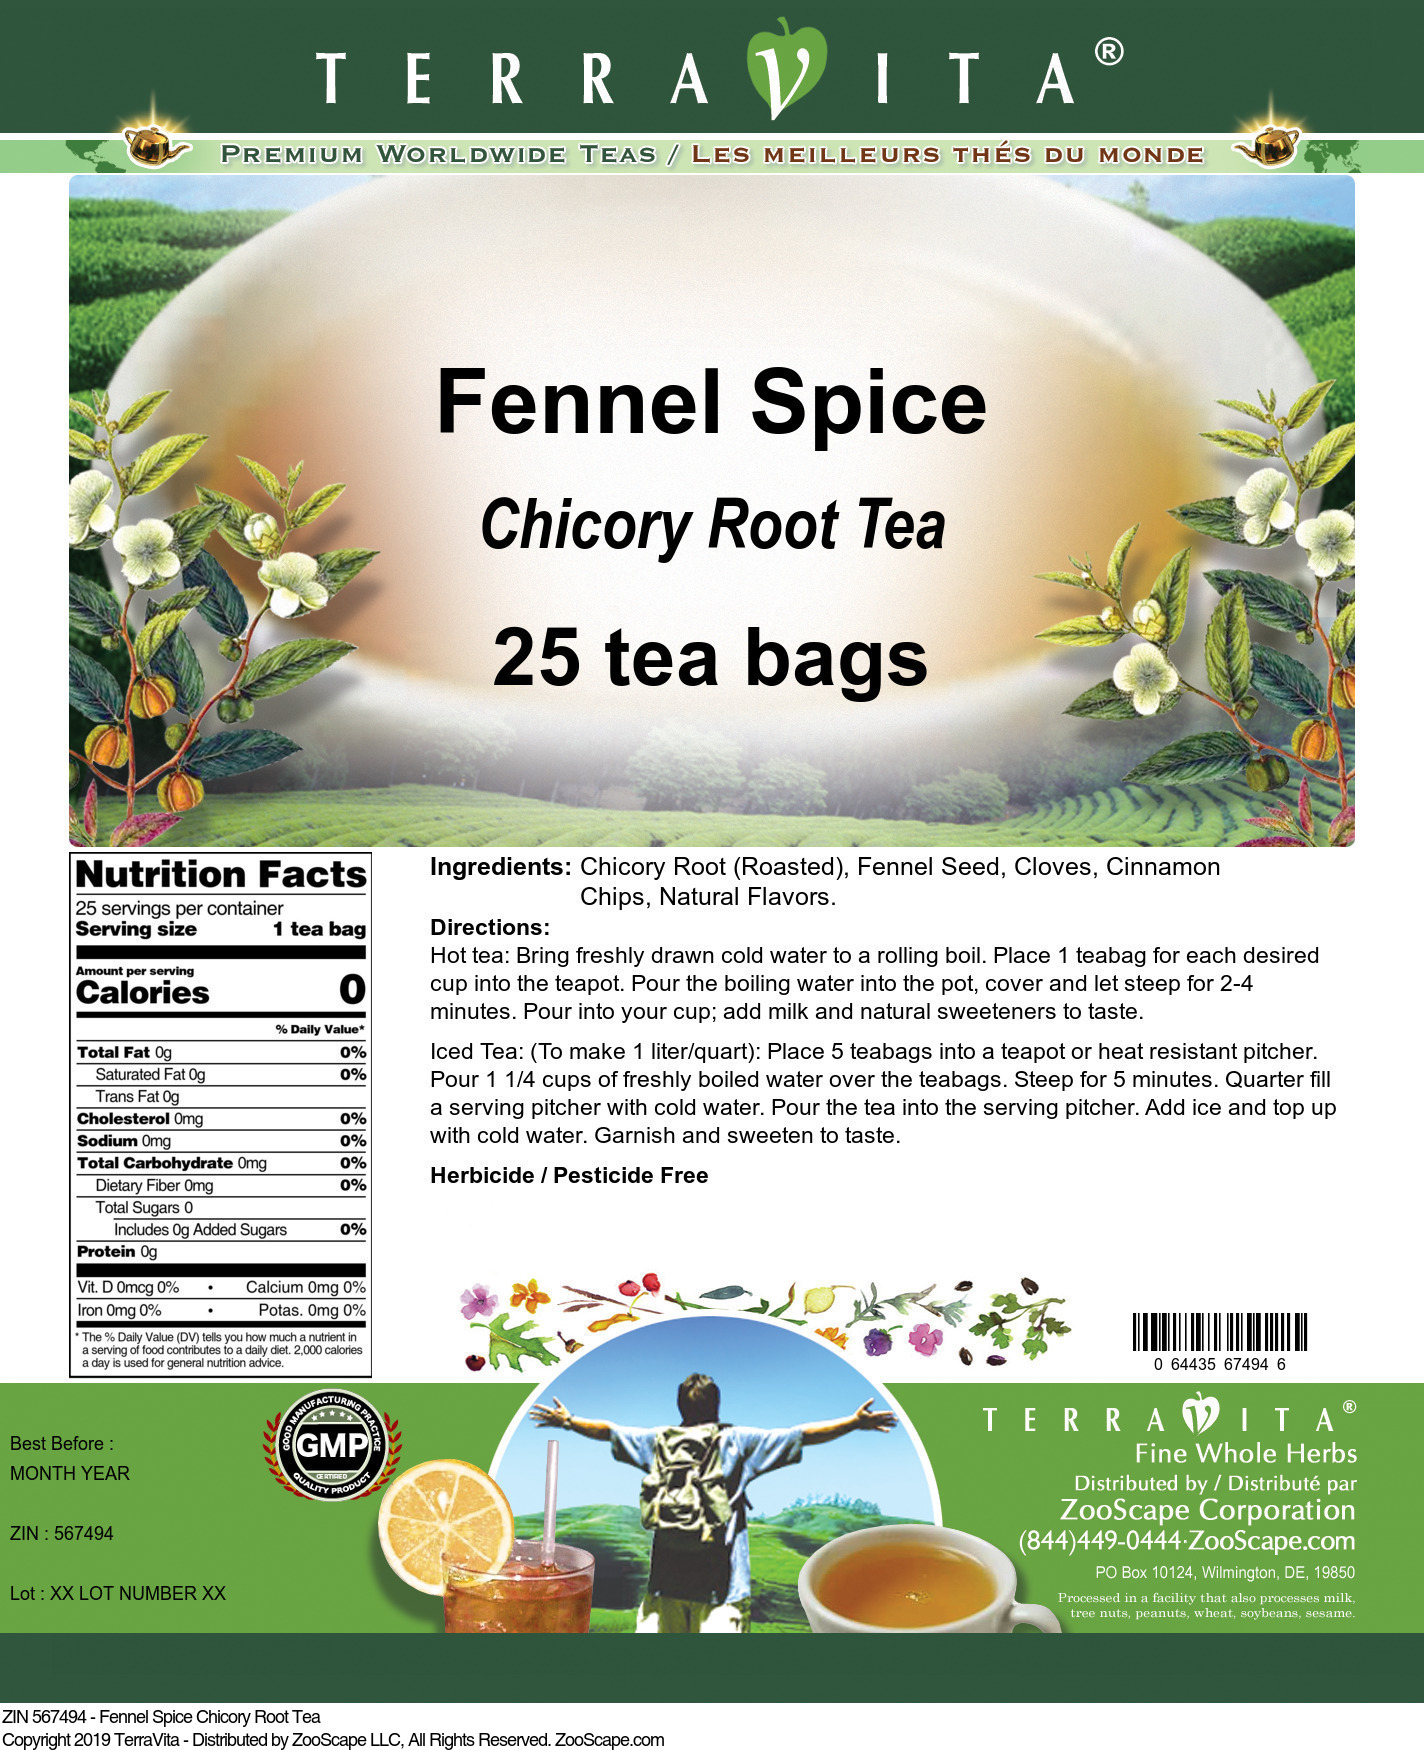 Fennel Spice Chicory Root Tea